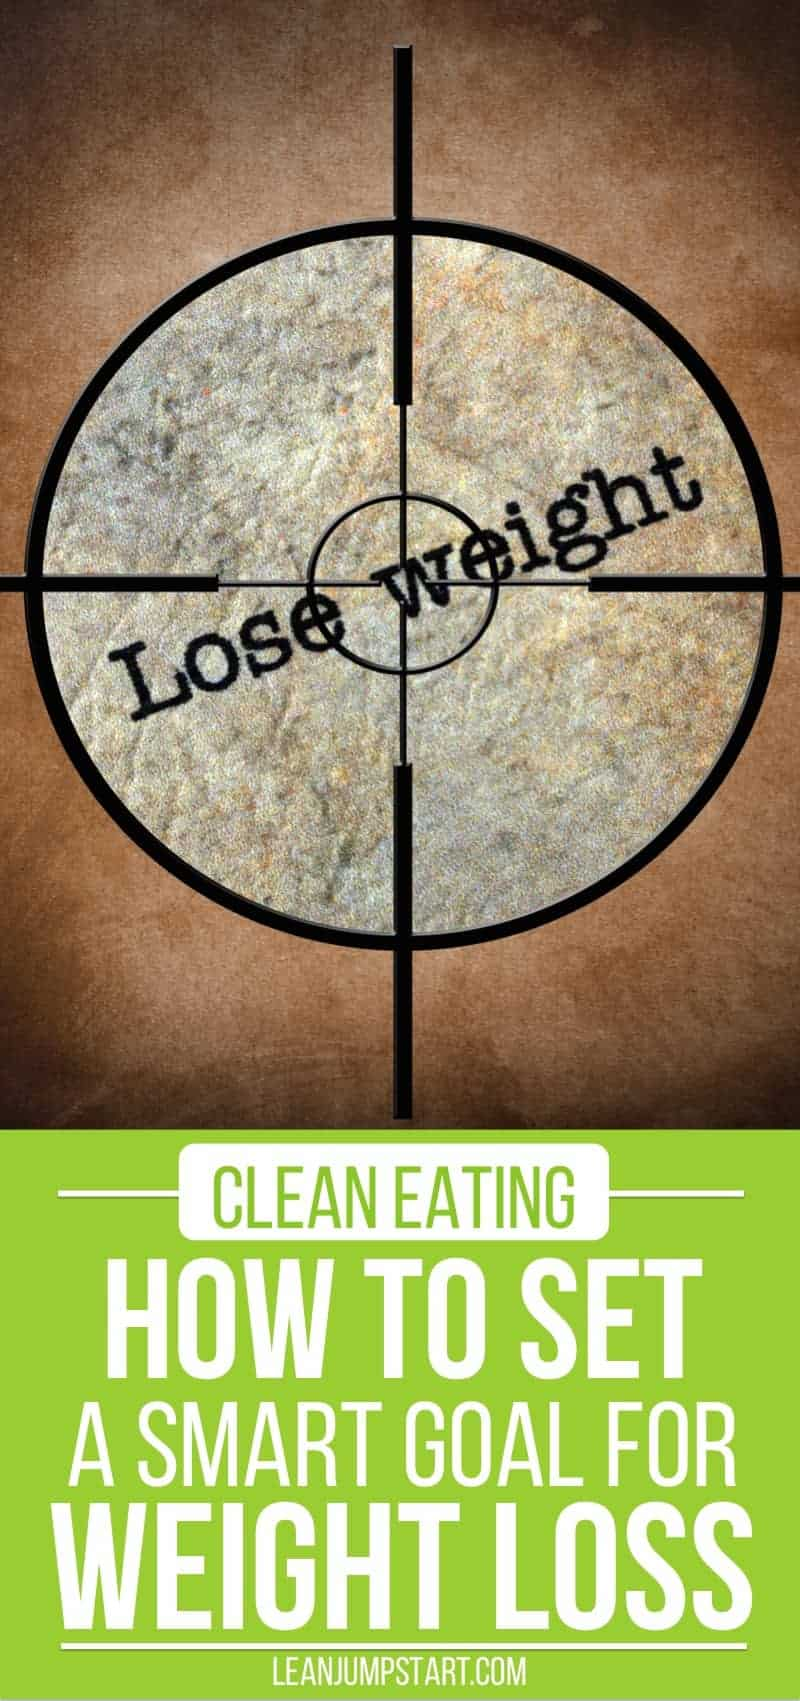 The Best Diet Plan – Lose Fat. Build Muscle. Be Healthy.